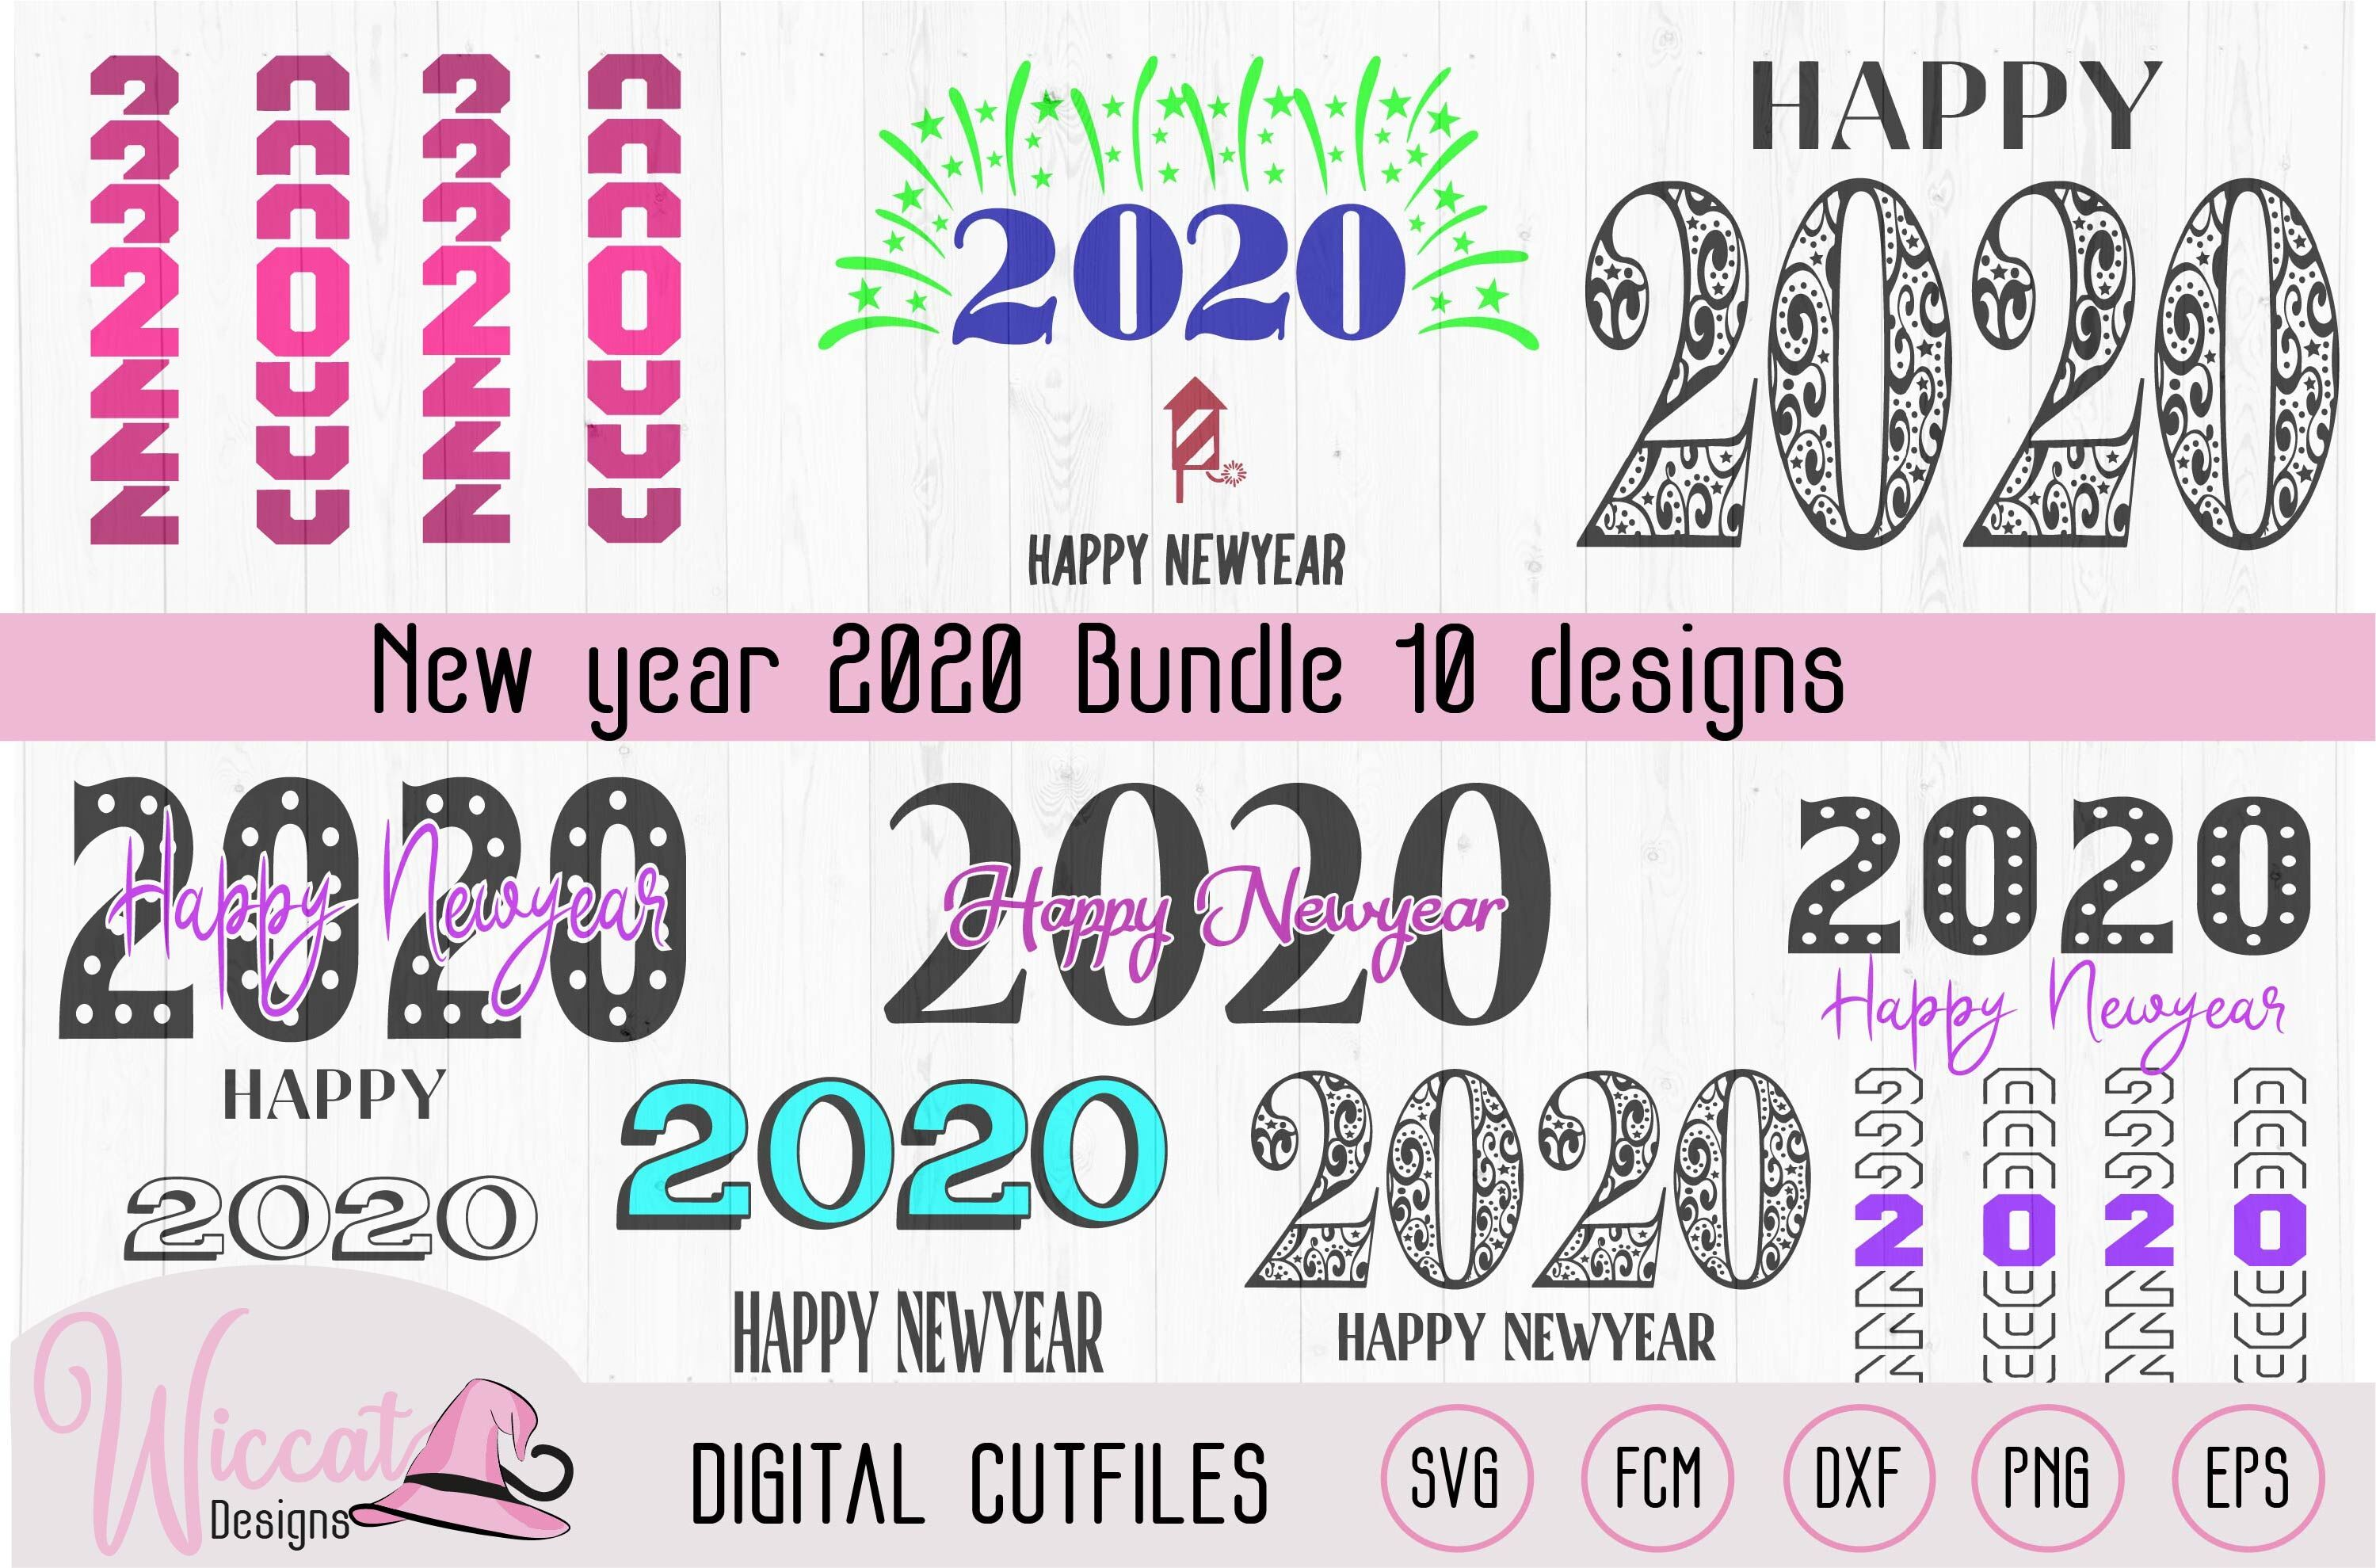 Happy New Year 2020 Word Art 2020 Quote Svg By Wiccatdesigns